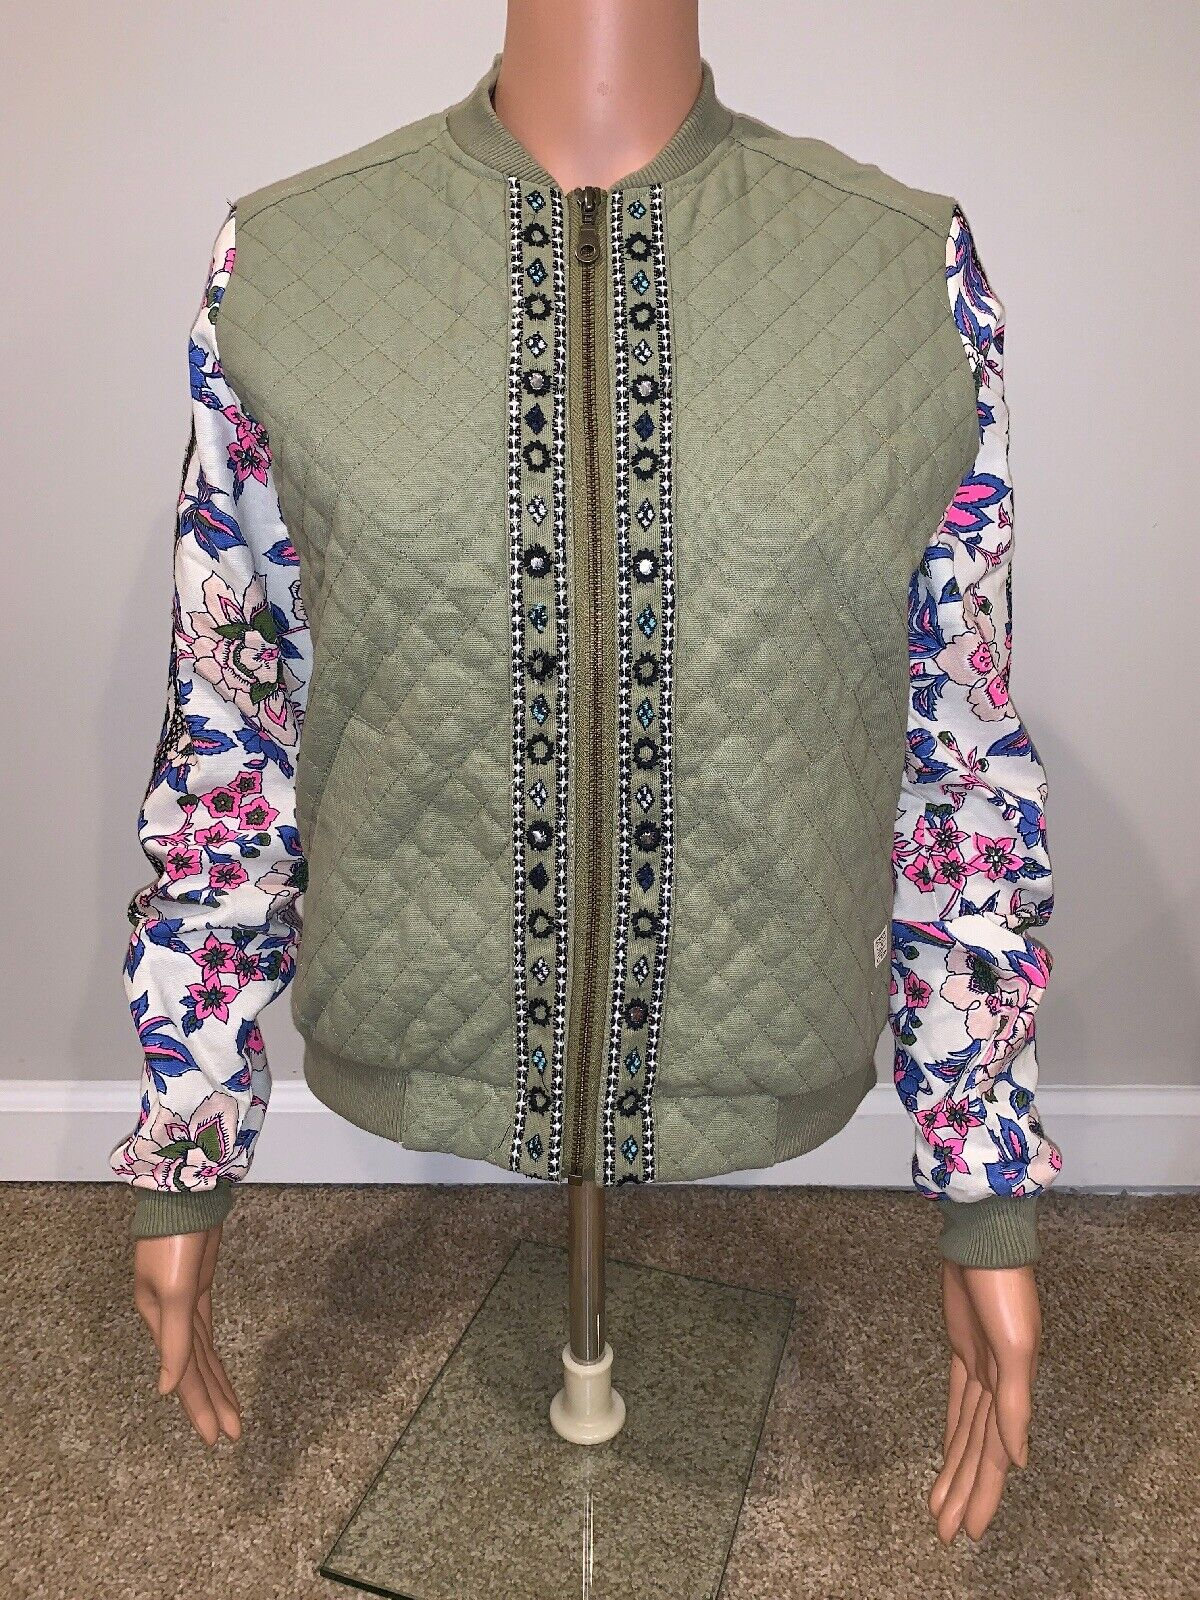 Billabong Women's Small Green With Flowers Bomber Style Coat Cotton Quilted